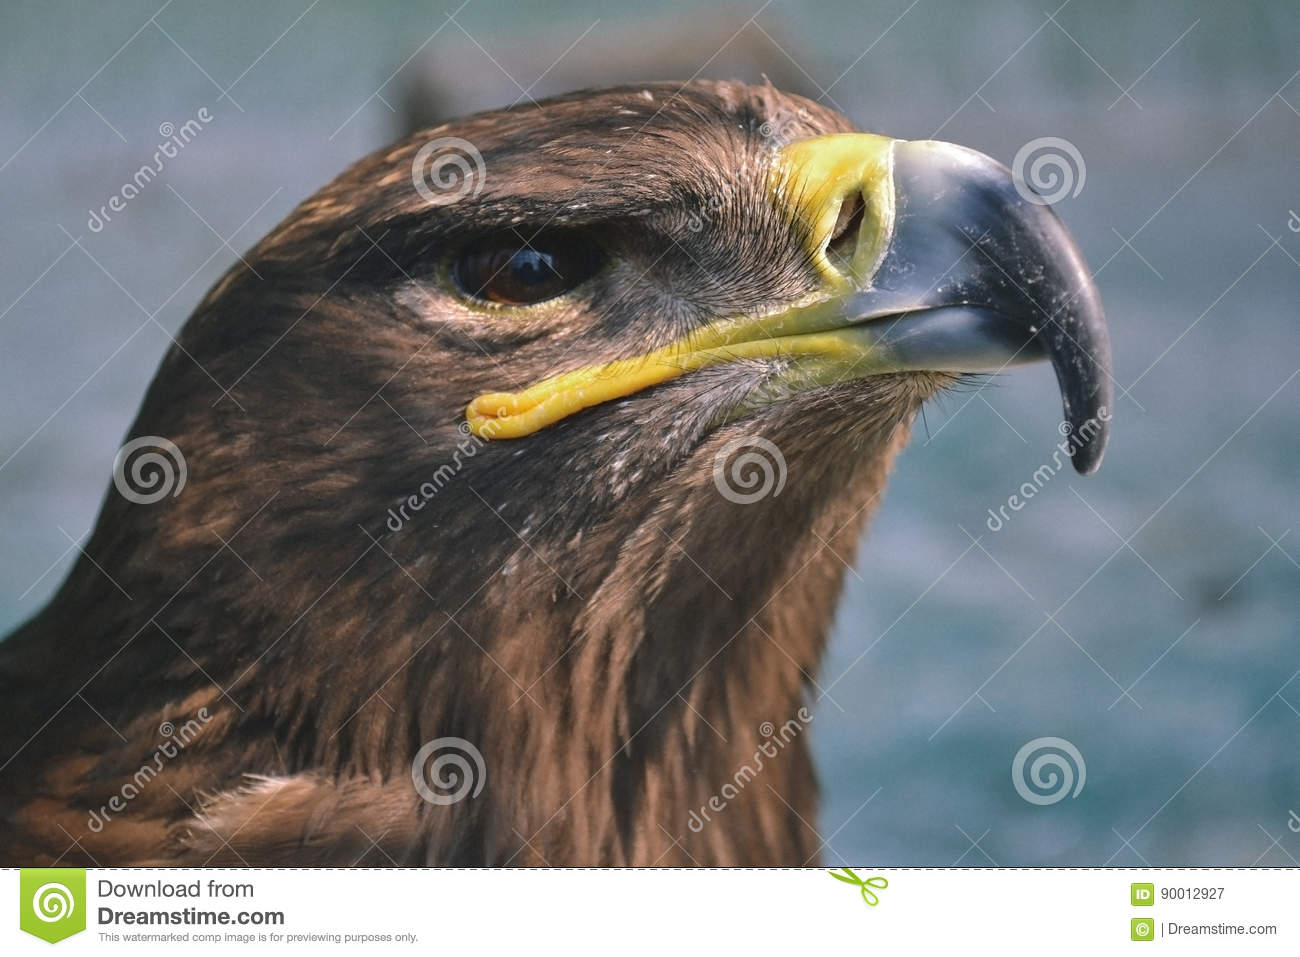 Hawk is similar to the Eagle. The birds of prey as well.